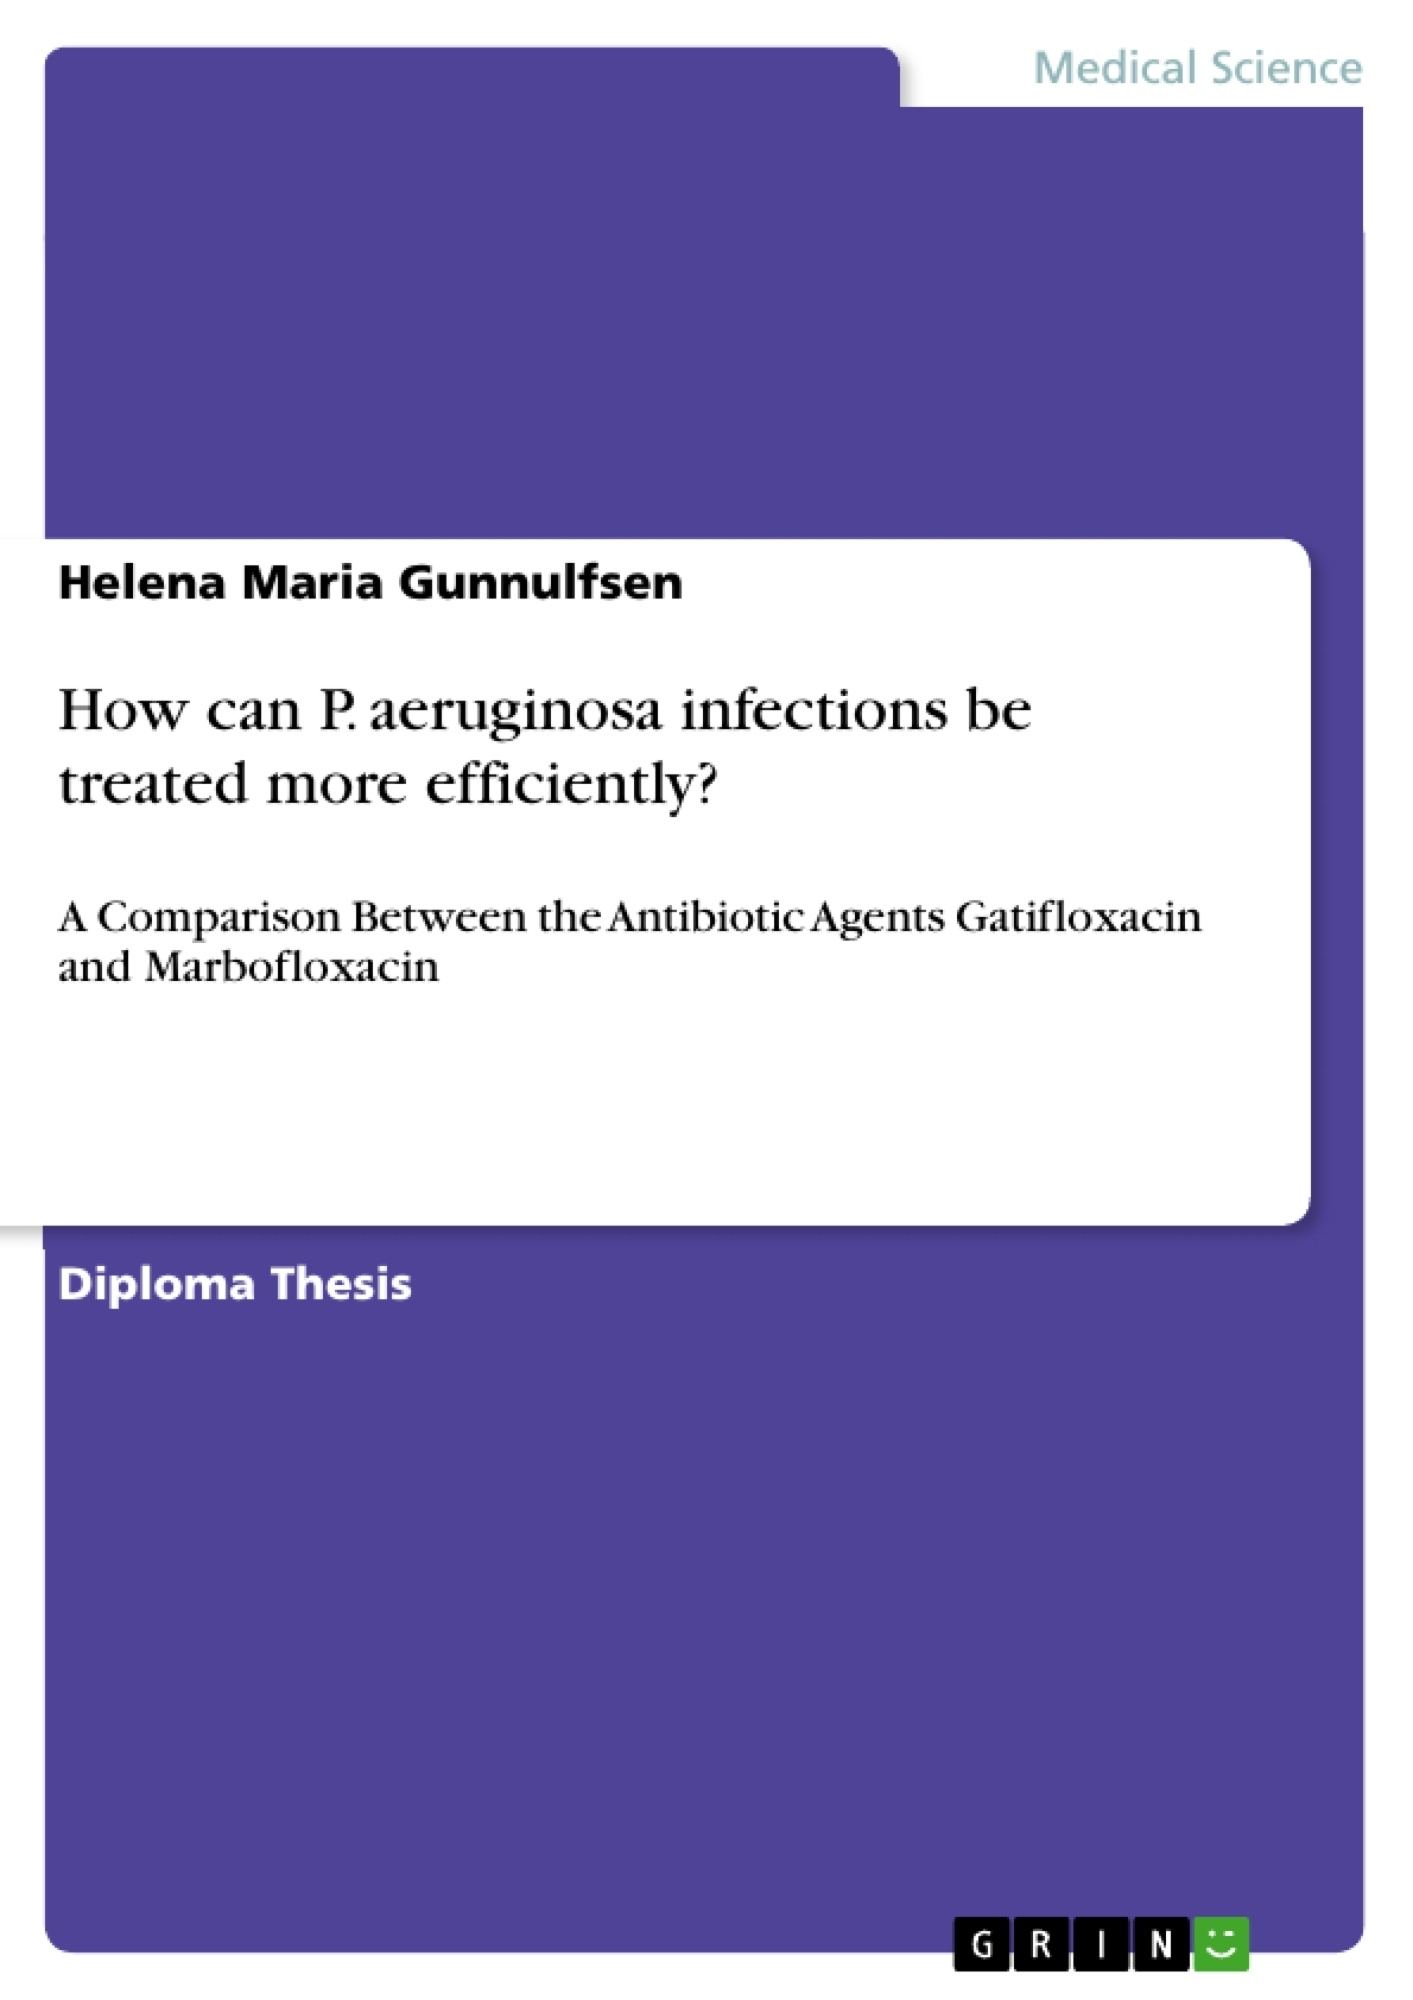 Title: How can P. aeruginosa infections be treated more efficiently?